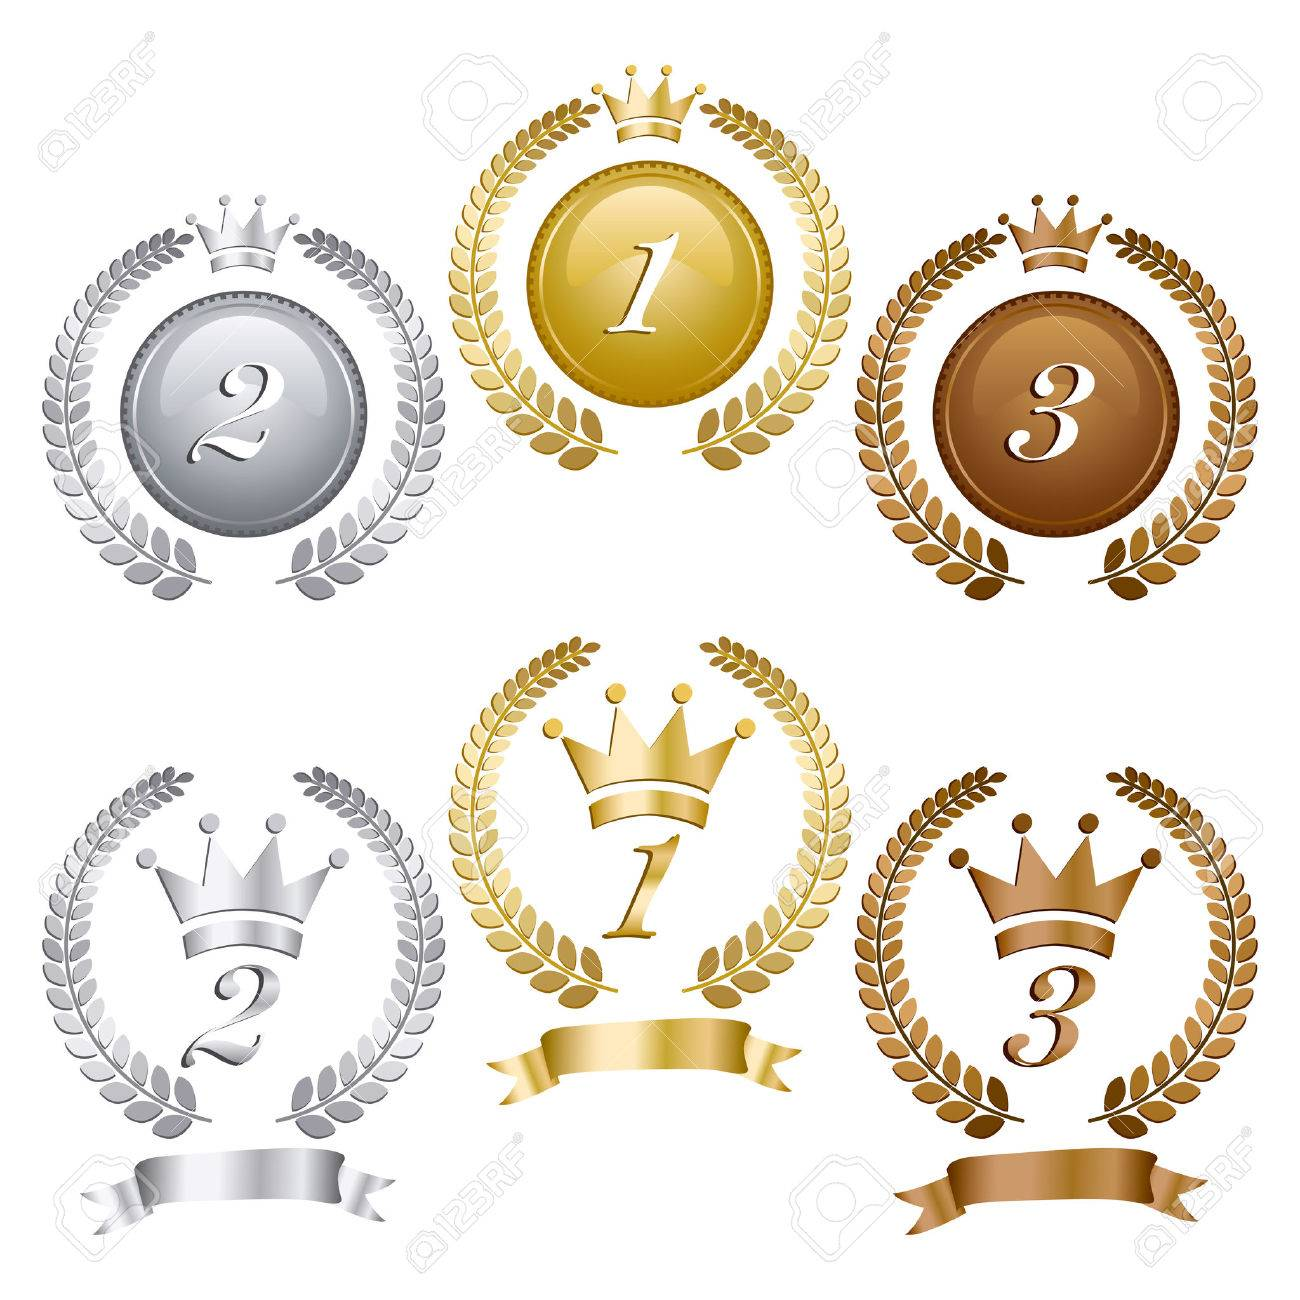 Gold silver and bronze medals Stock Vector - 7362108